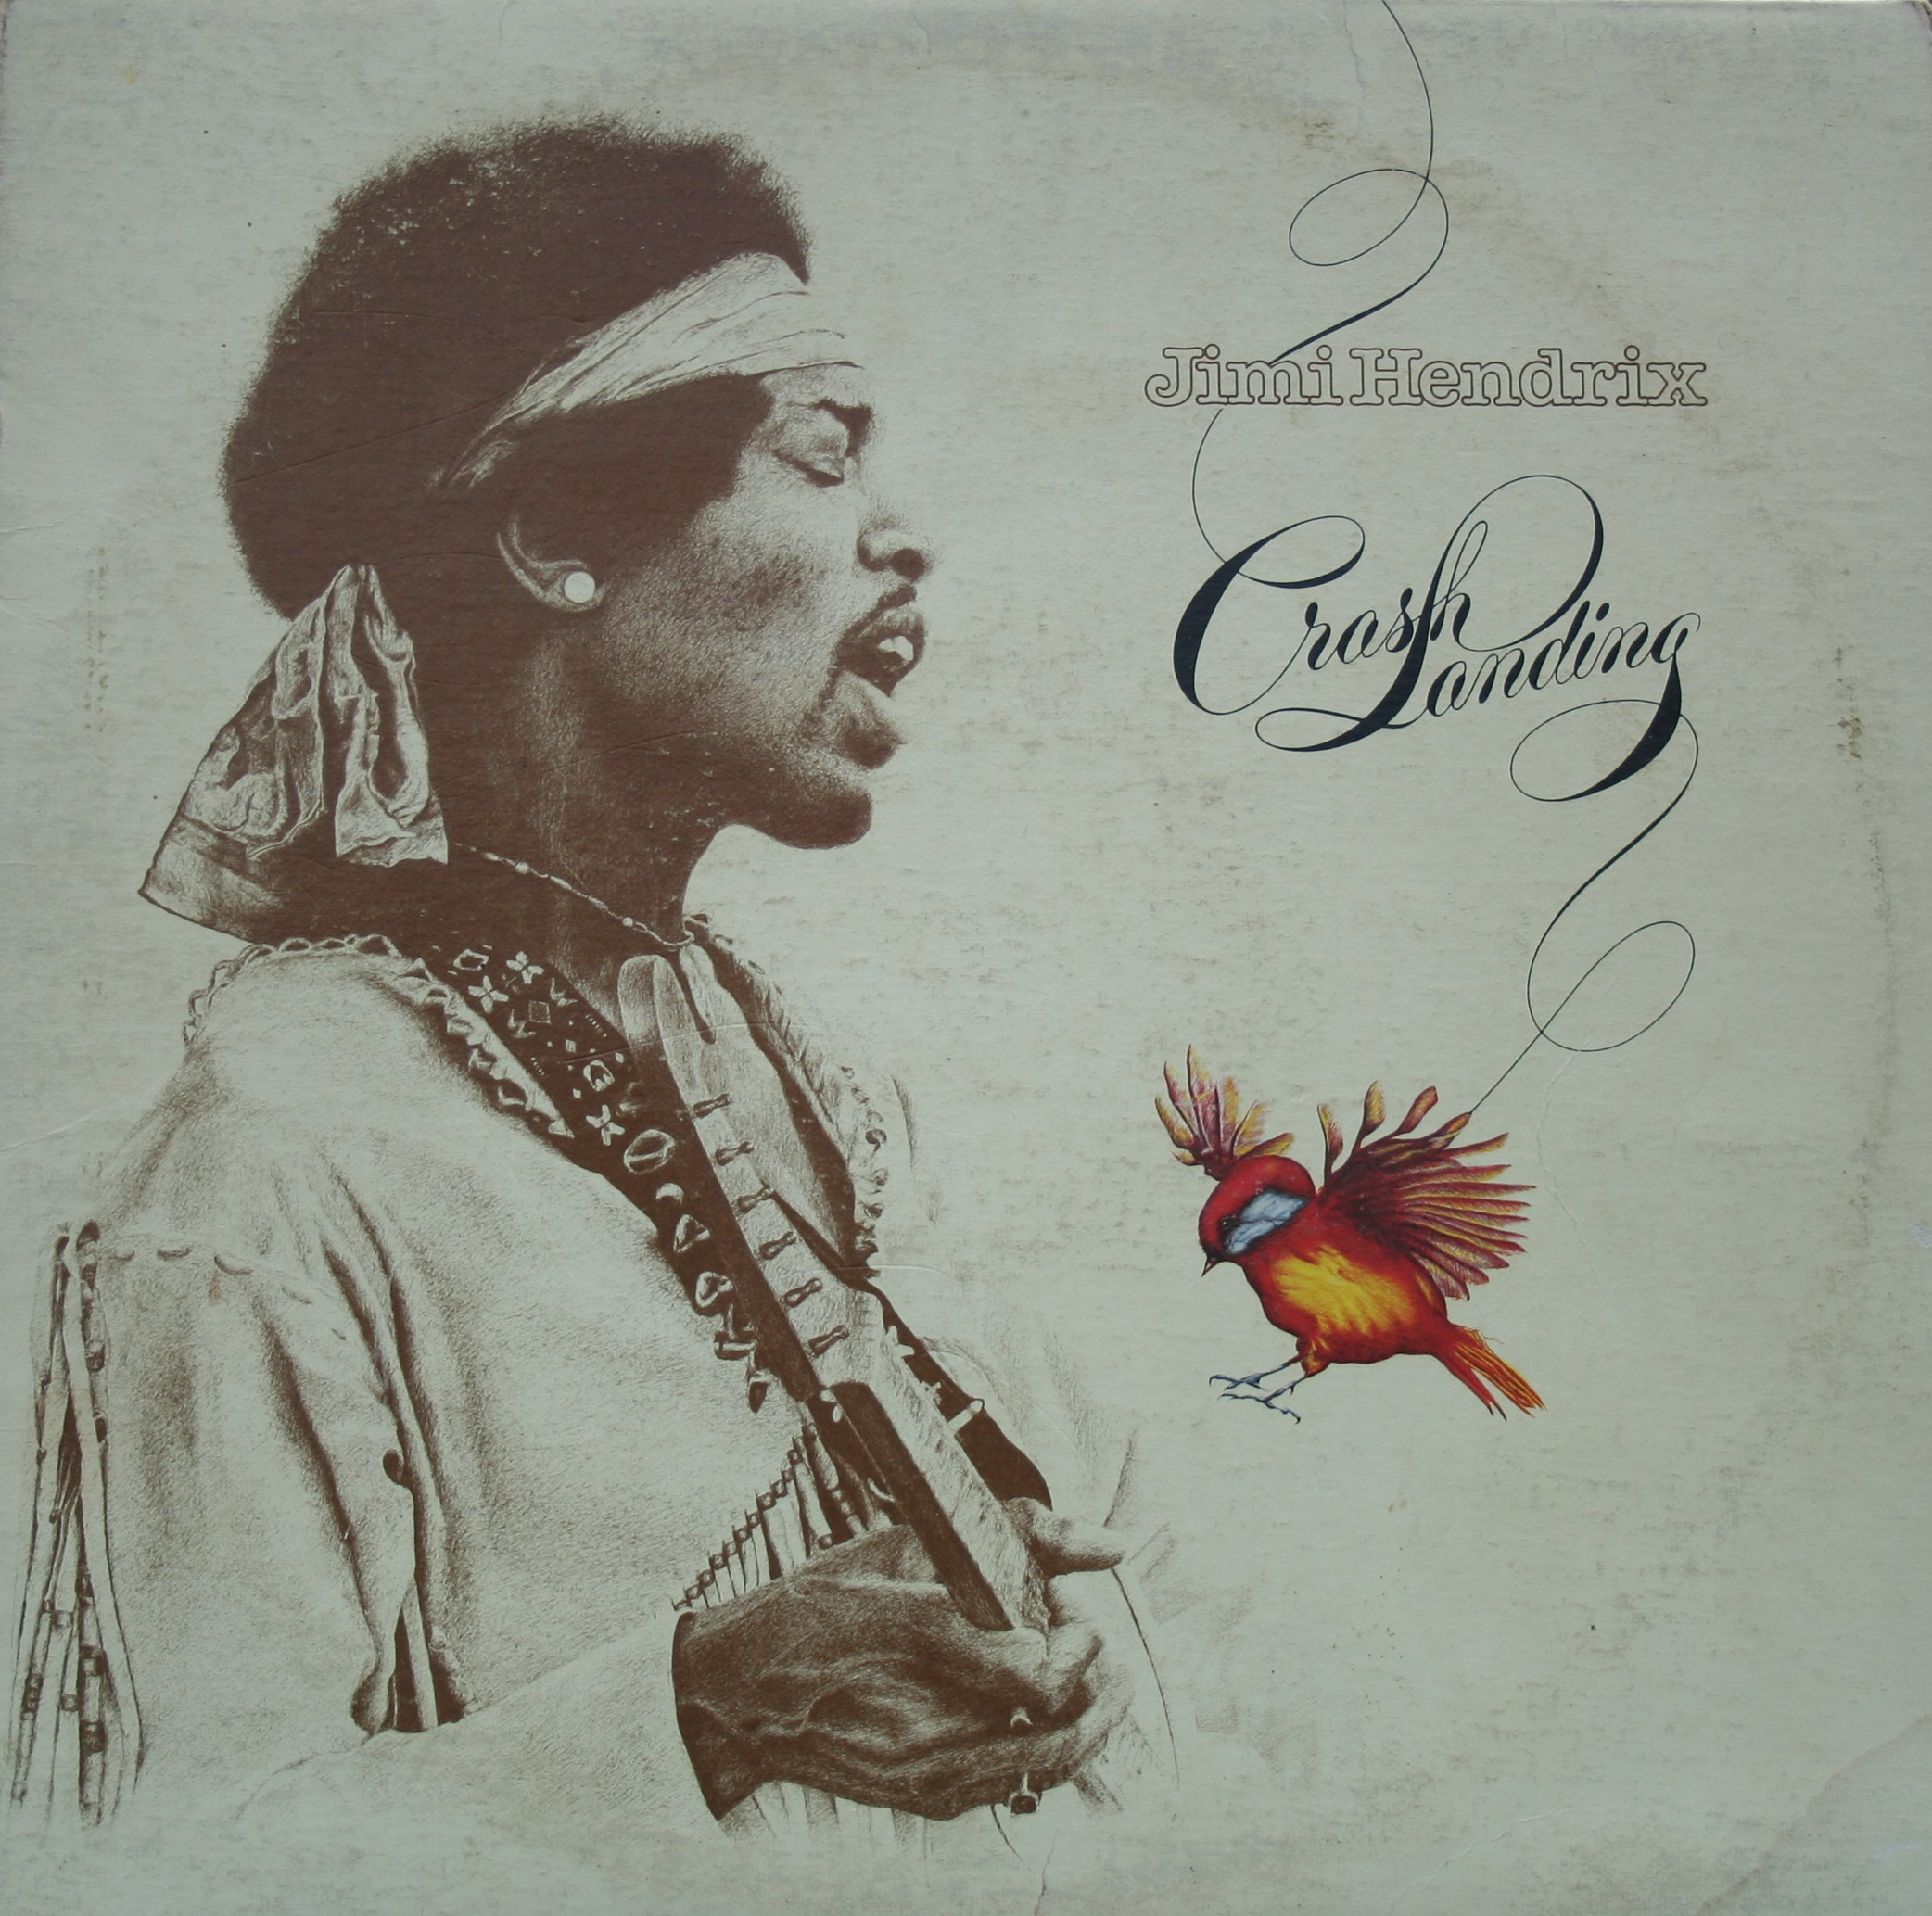 the first album of jimi hendrix But hendrix was also a first-rate  was a posthumous compilation album (based on jimi's handwritten  west coast seattle boy: the jimi hendrix.